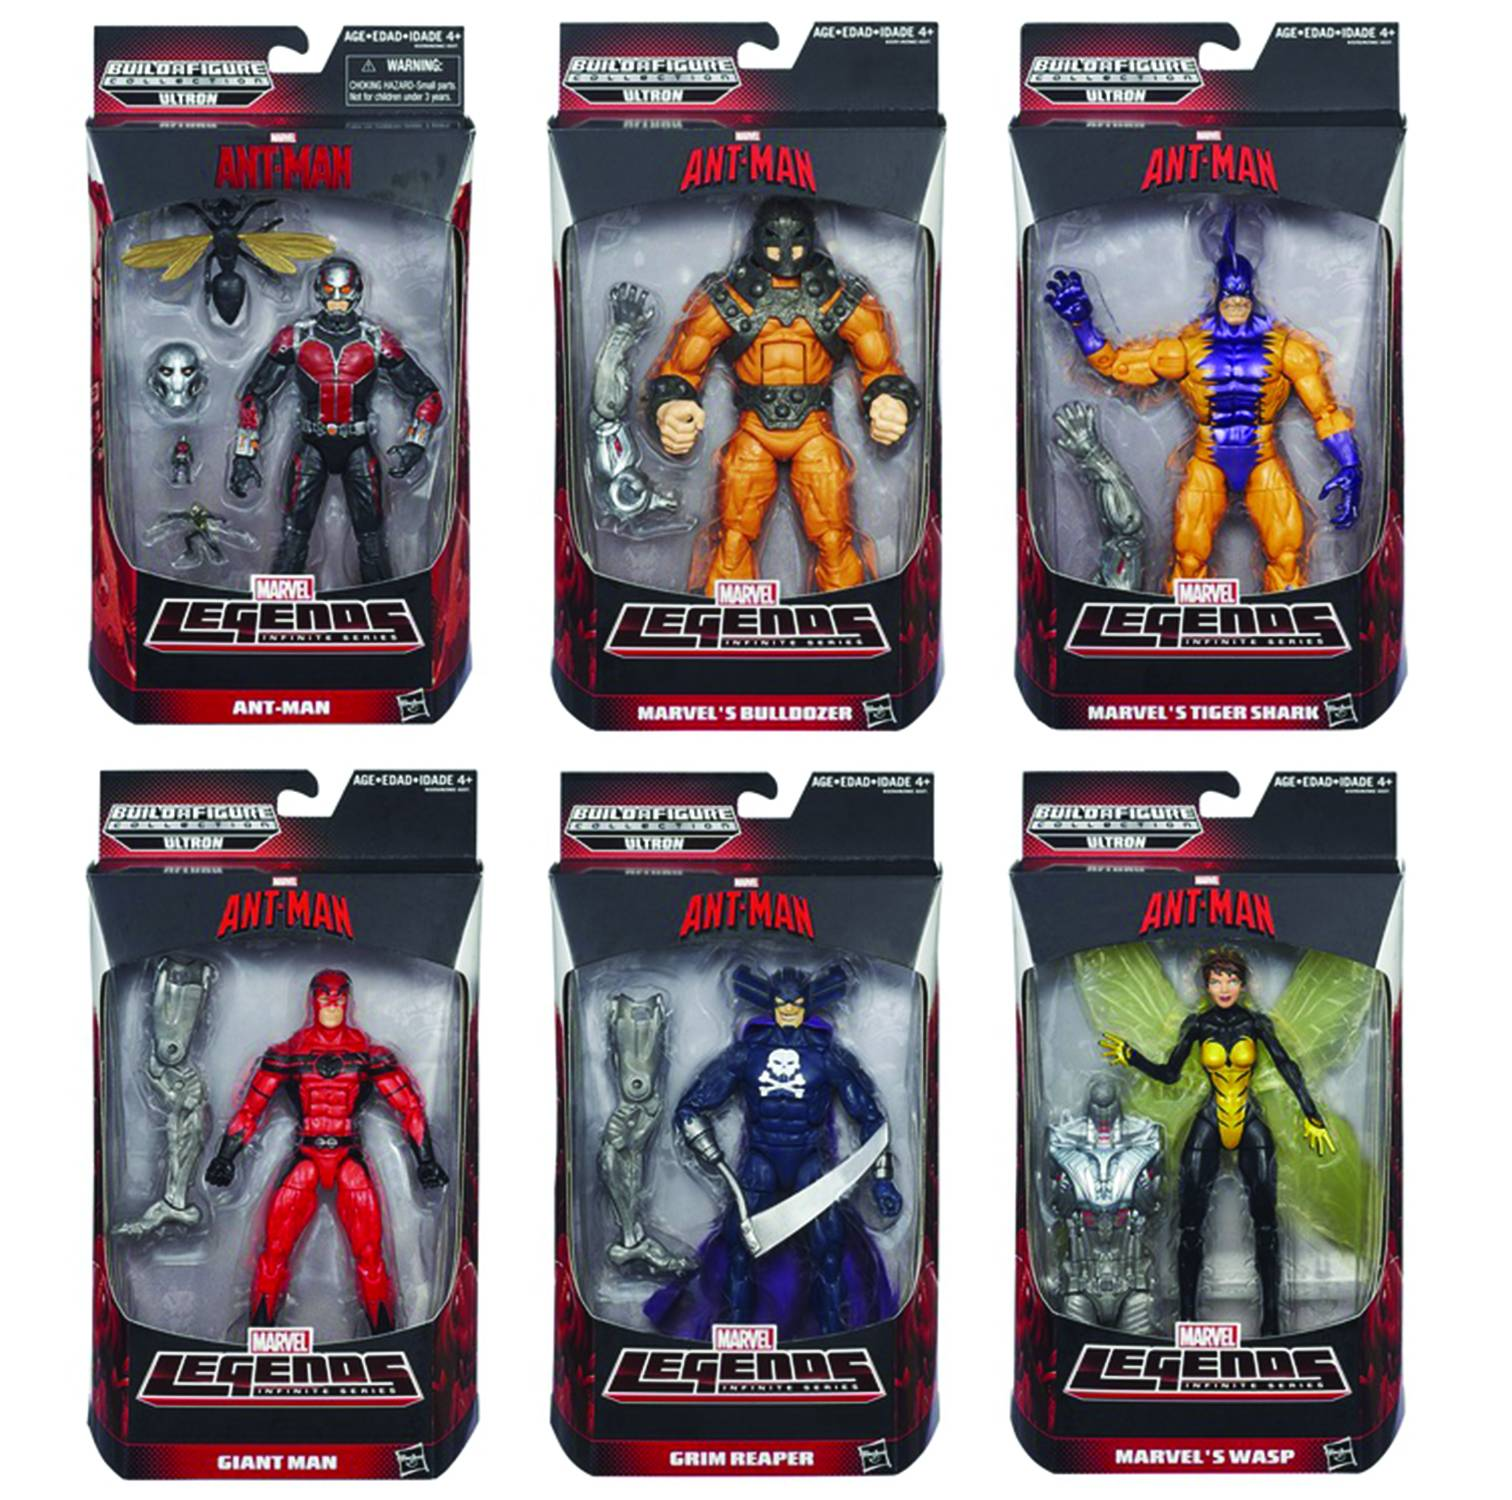 Hasbro Ant-Man Legends Ultron Prime Series - Set of 6 Figures